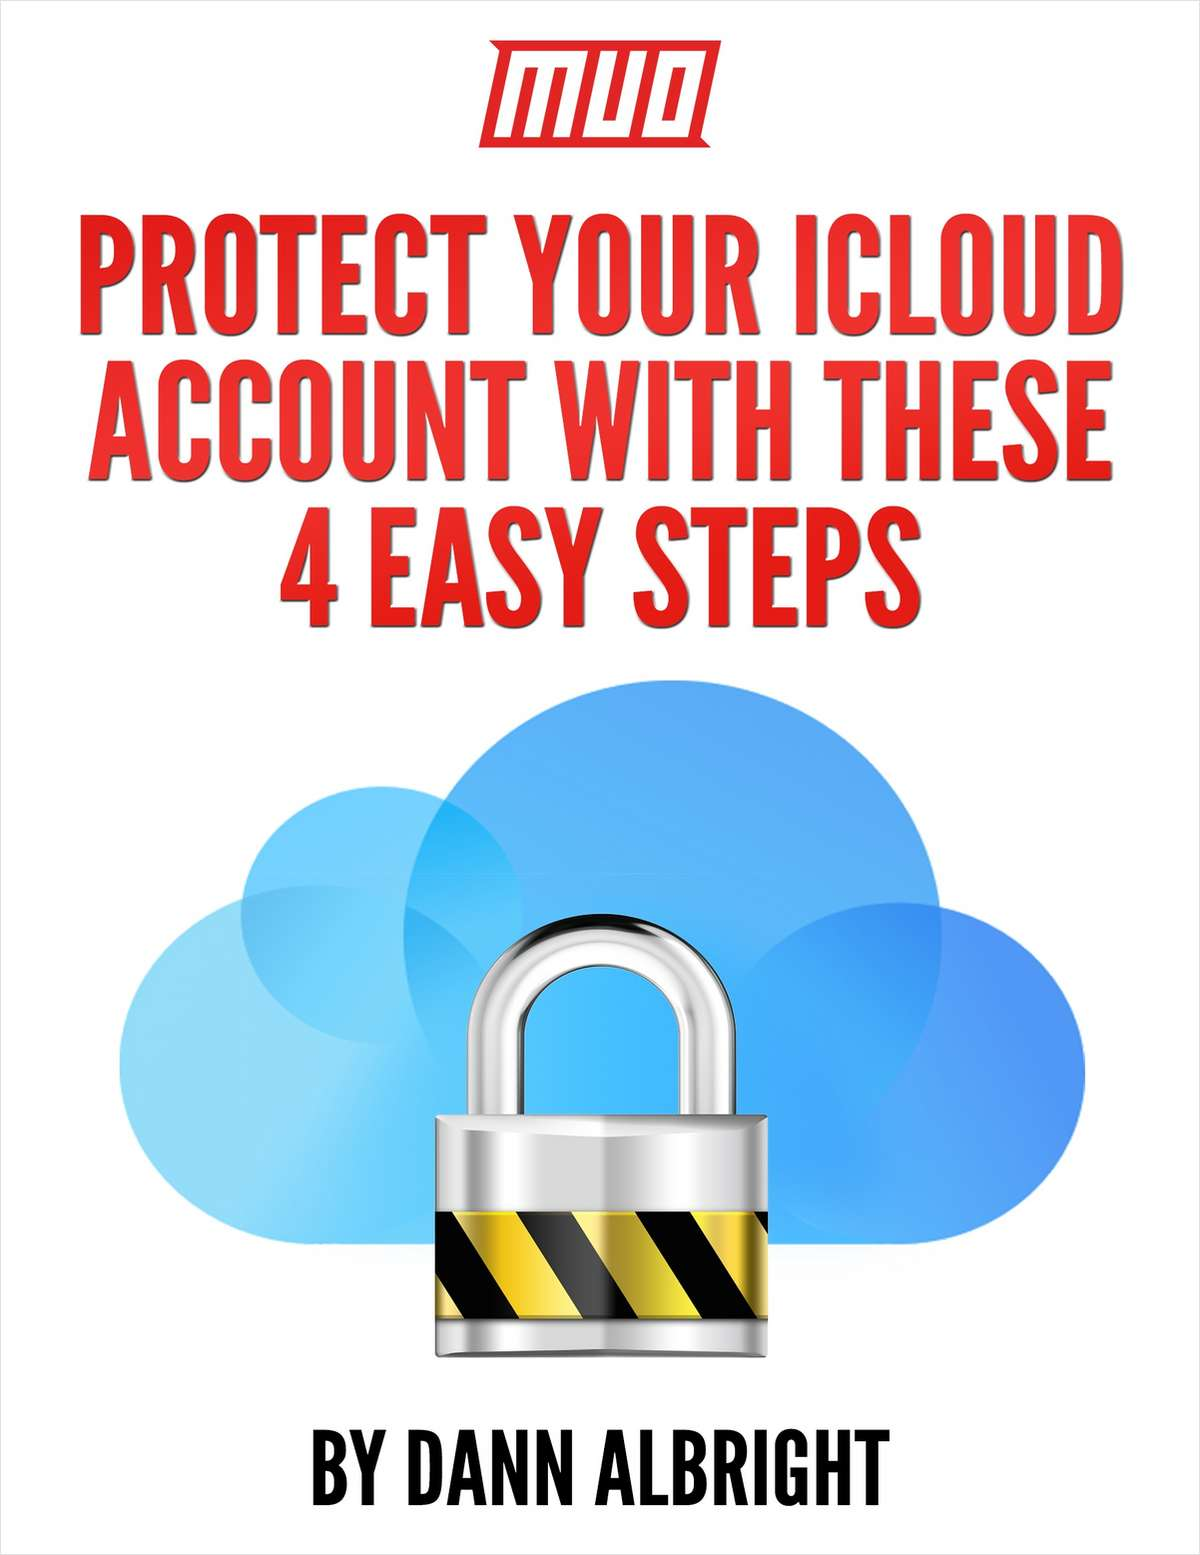 Protect Your iCloud Account With These 4 Easy Steps